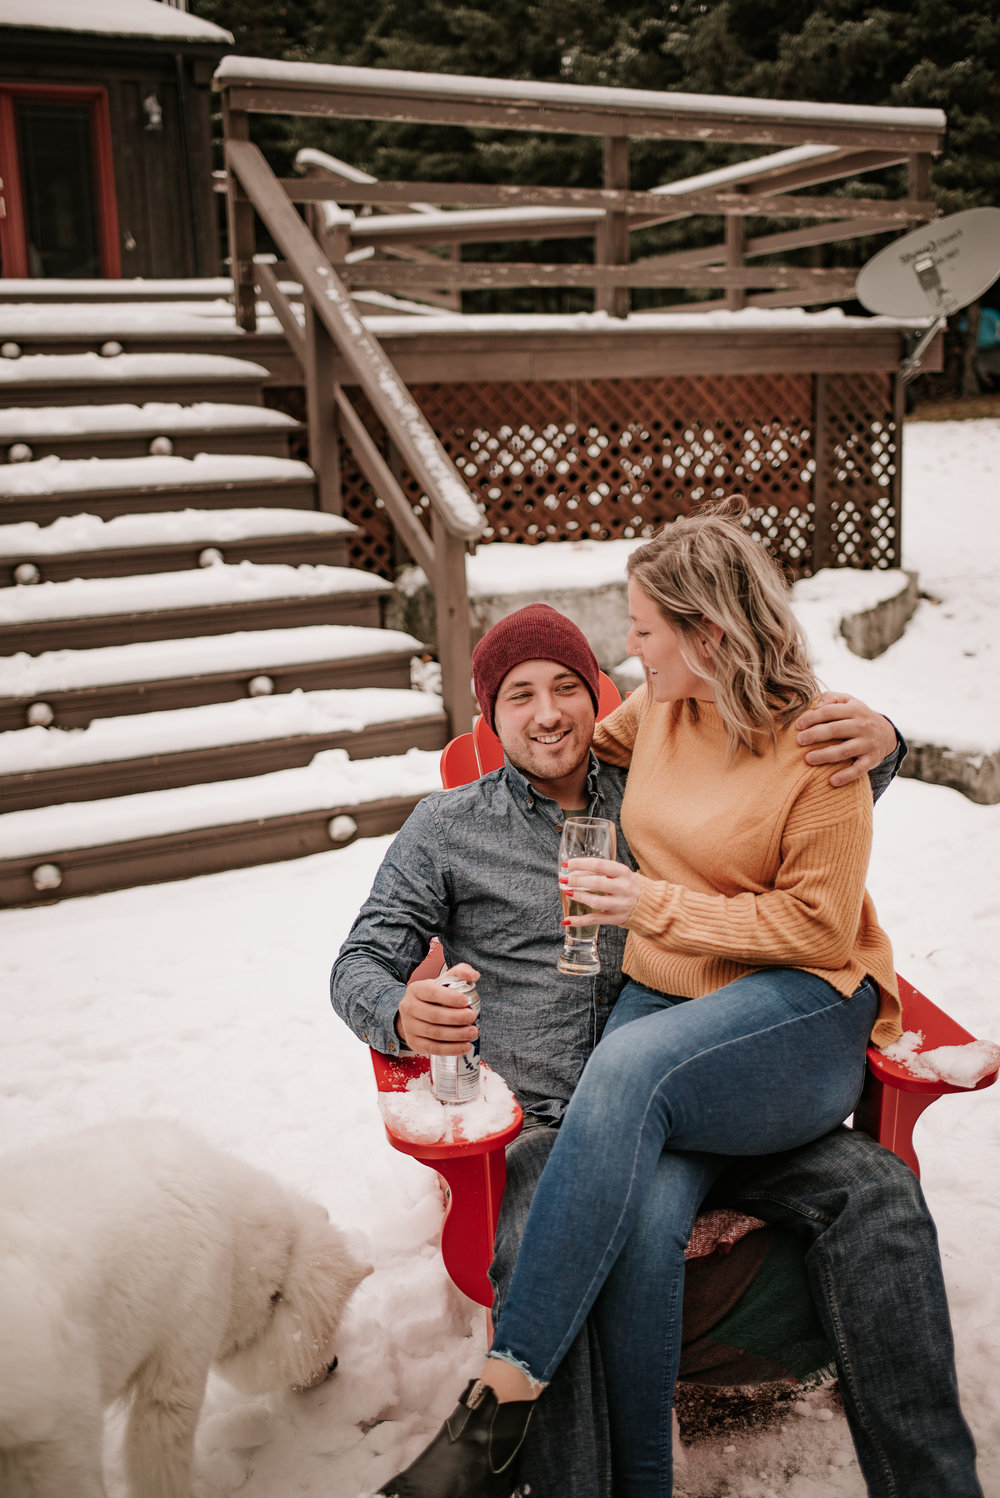 Snowy_engagement_session-51.jpg